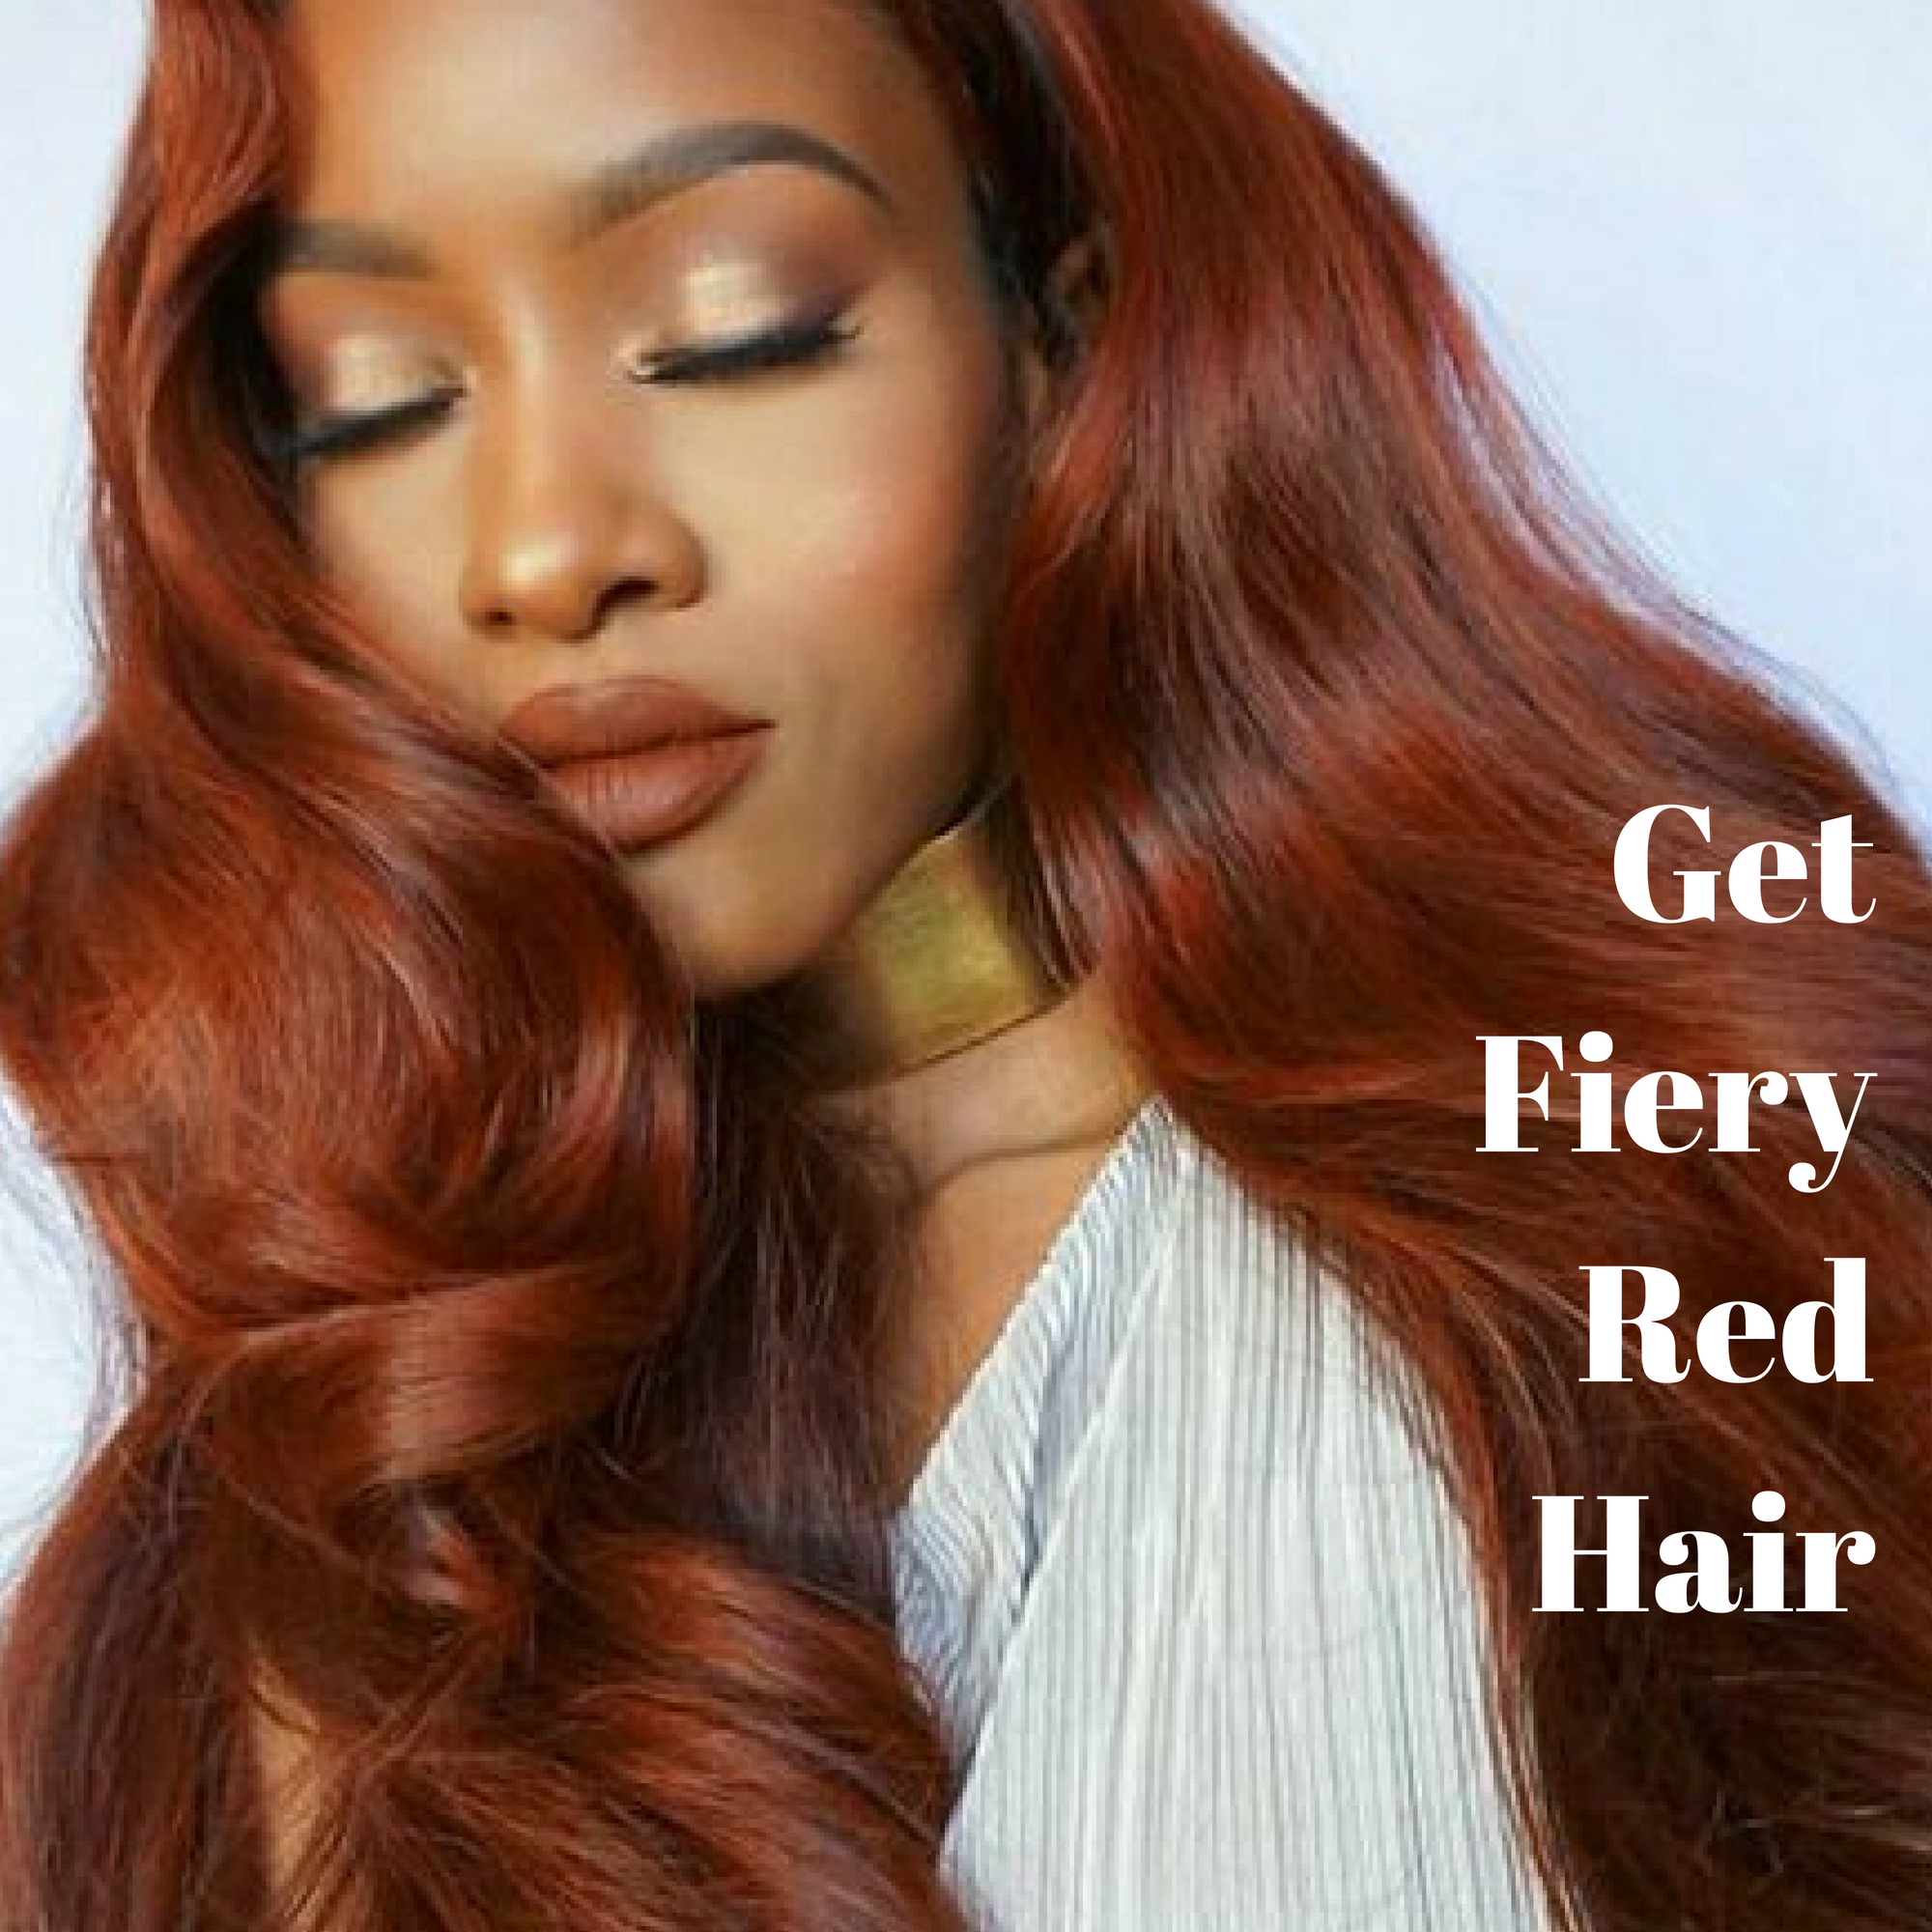 5 REASONS TO TRY FIERY RED HAIR